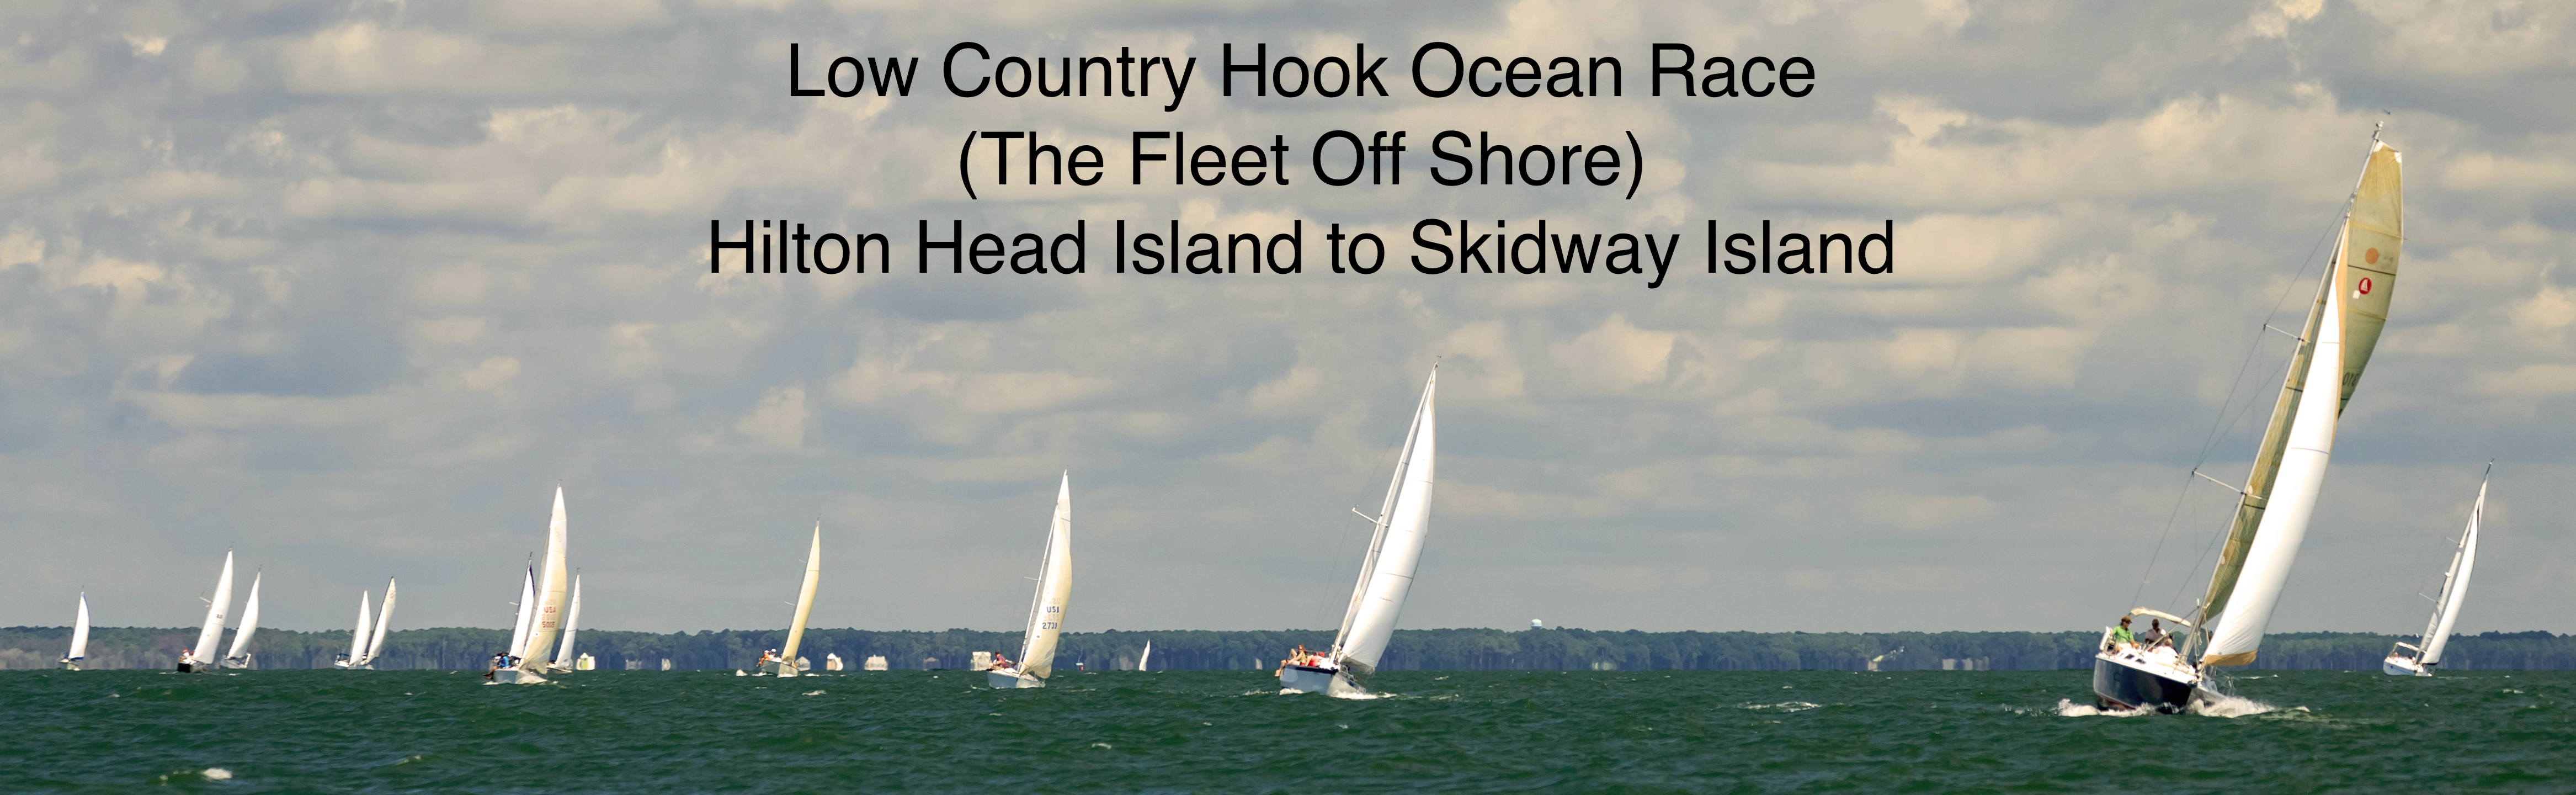 HOOK OCEAN RACE 2018 Skidaway Island Boating Club SIBC